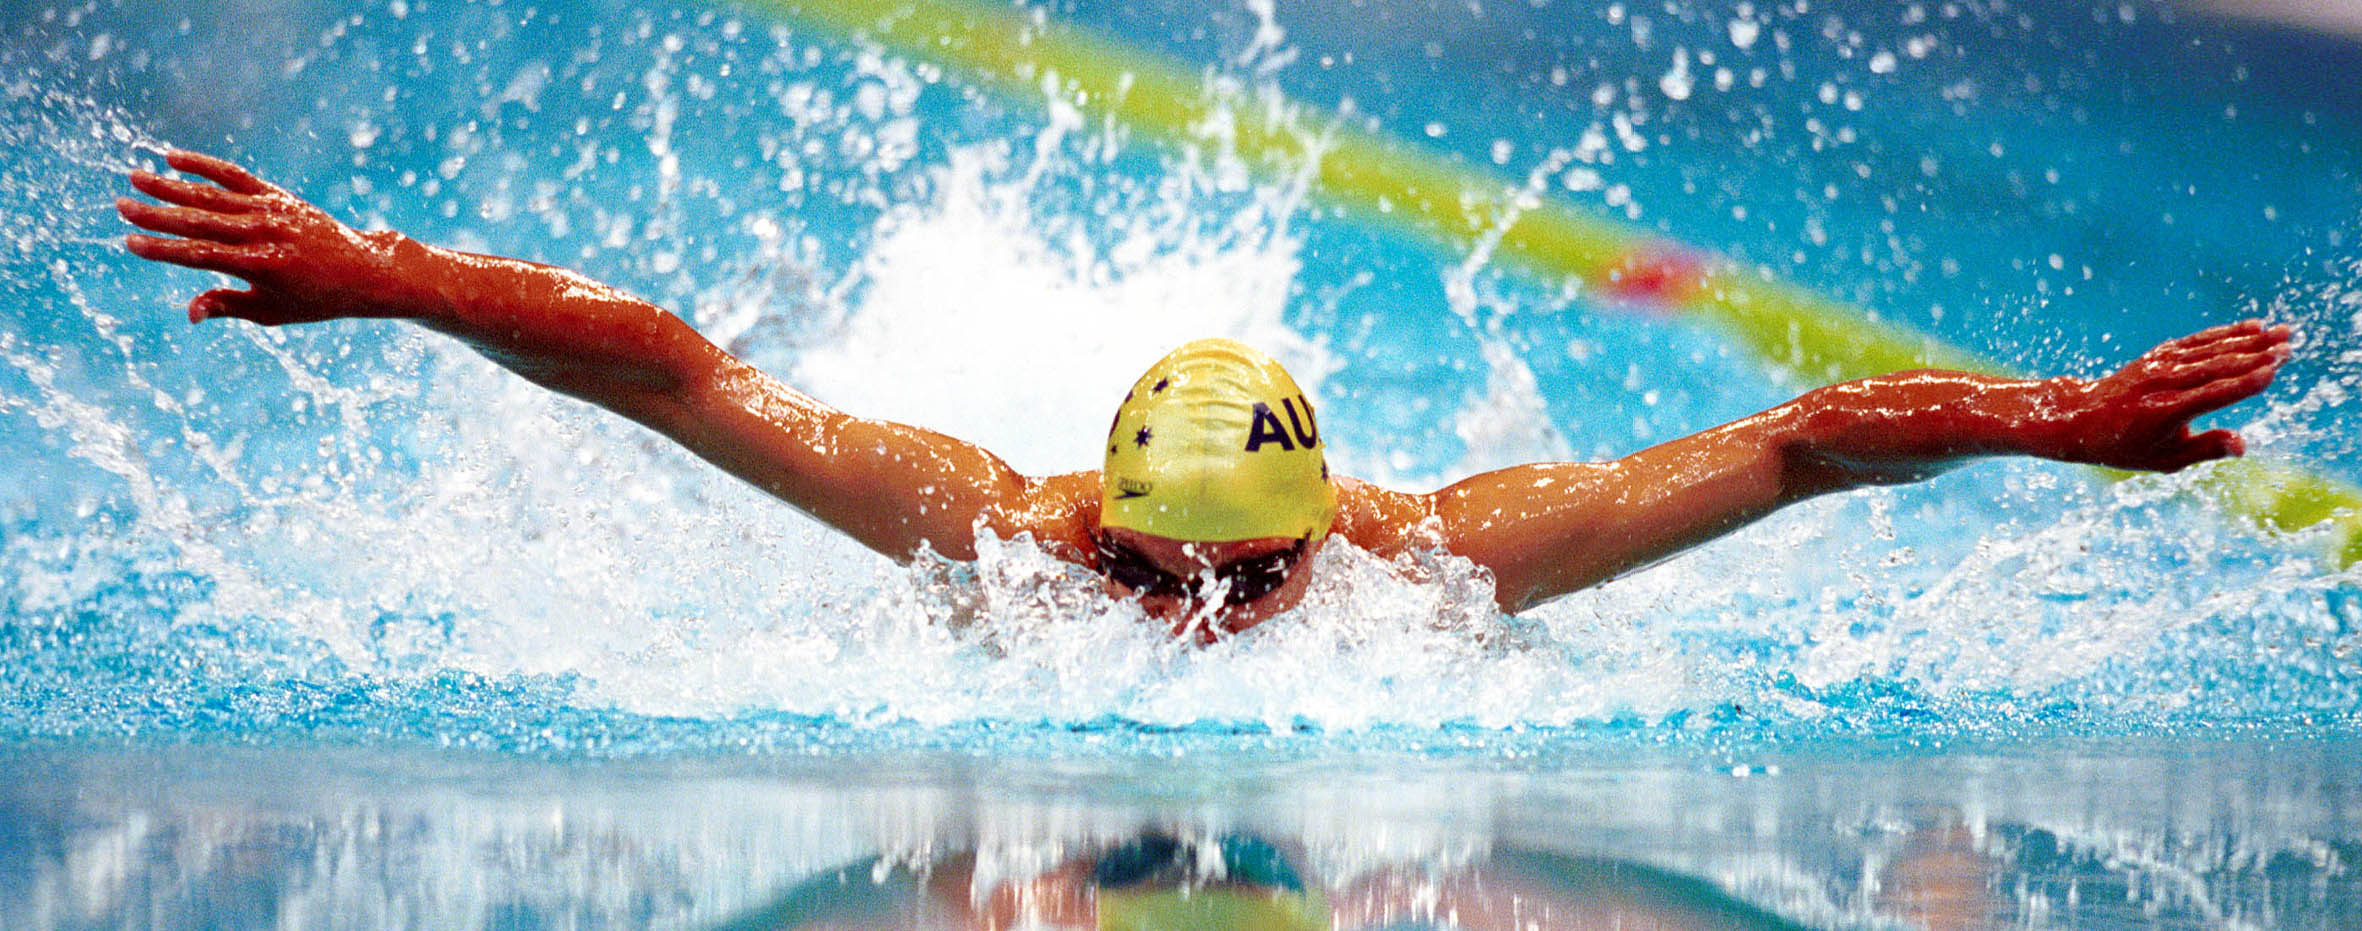 © Sport the library/Tom Putt Sydney 2000 Paralympic Games Swimming Day 3, October 21st. Action shot of Daniel Bell (AUS) in the pool (butterfly) showing reflections.